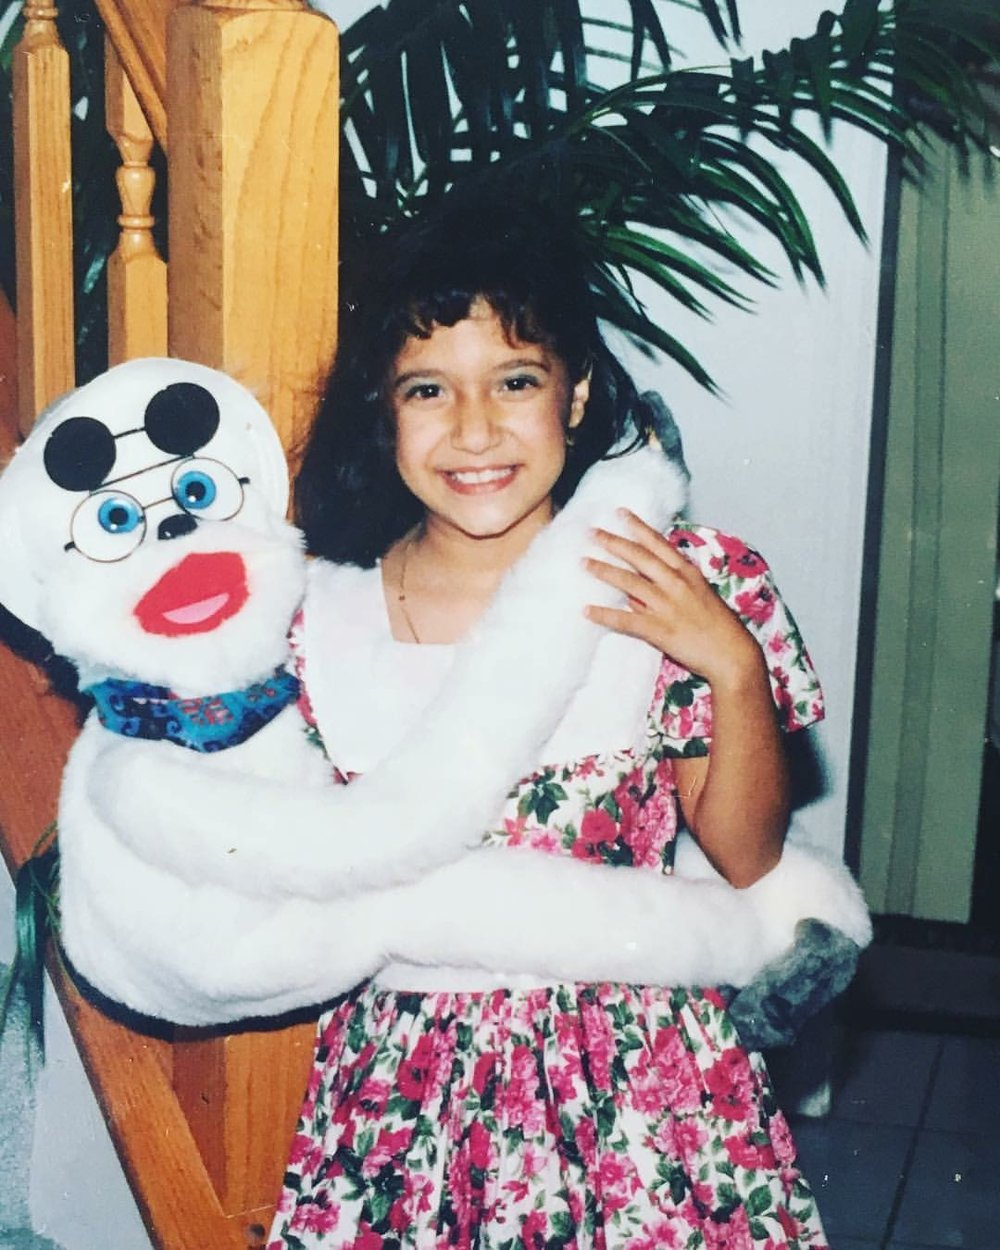 Sheli and her Puppet pal, circa 1994.